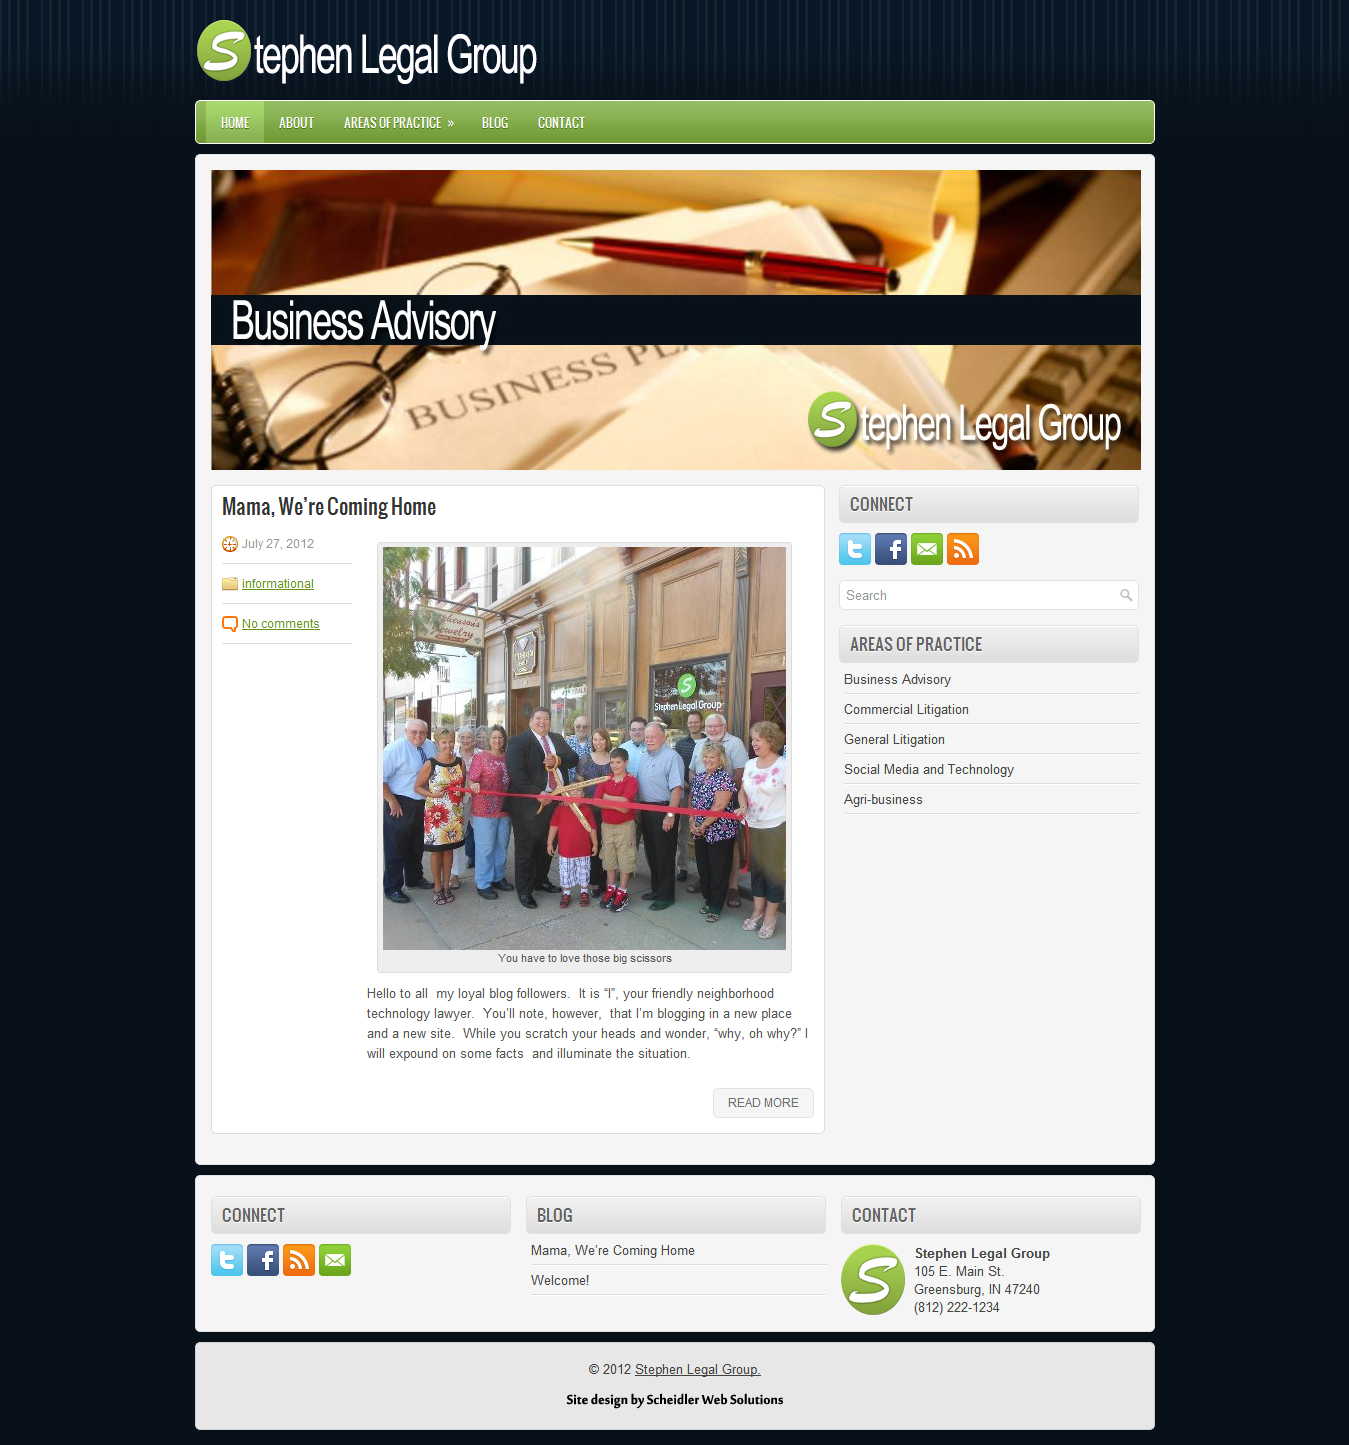 StephenLegal.com launched in July 2012 to coincide with the opening of the firm's office in Greensburg, Indiana.